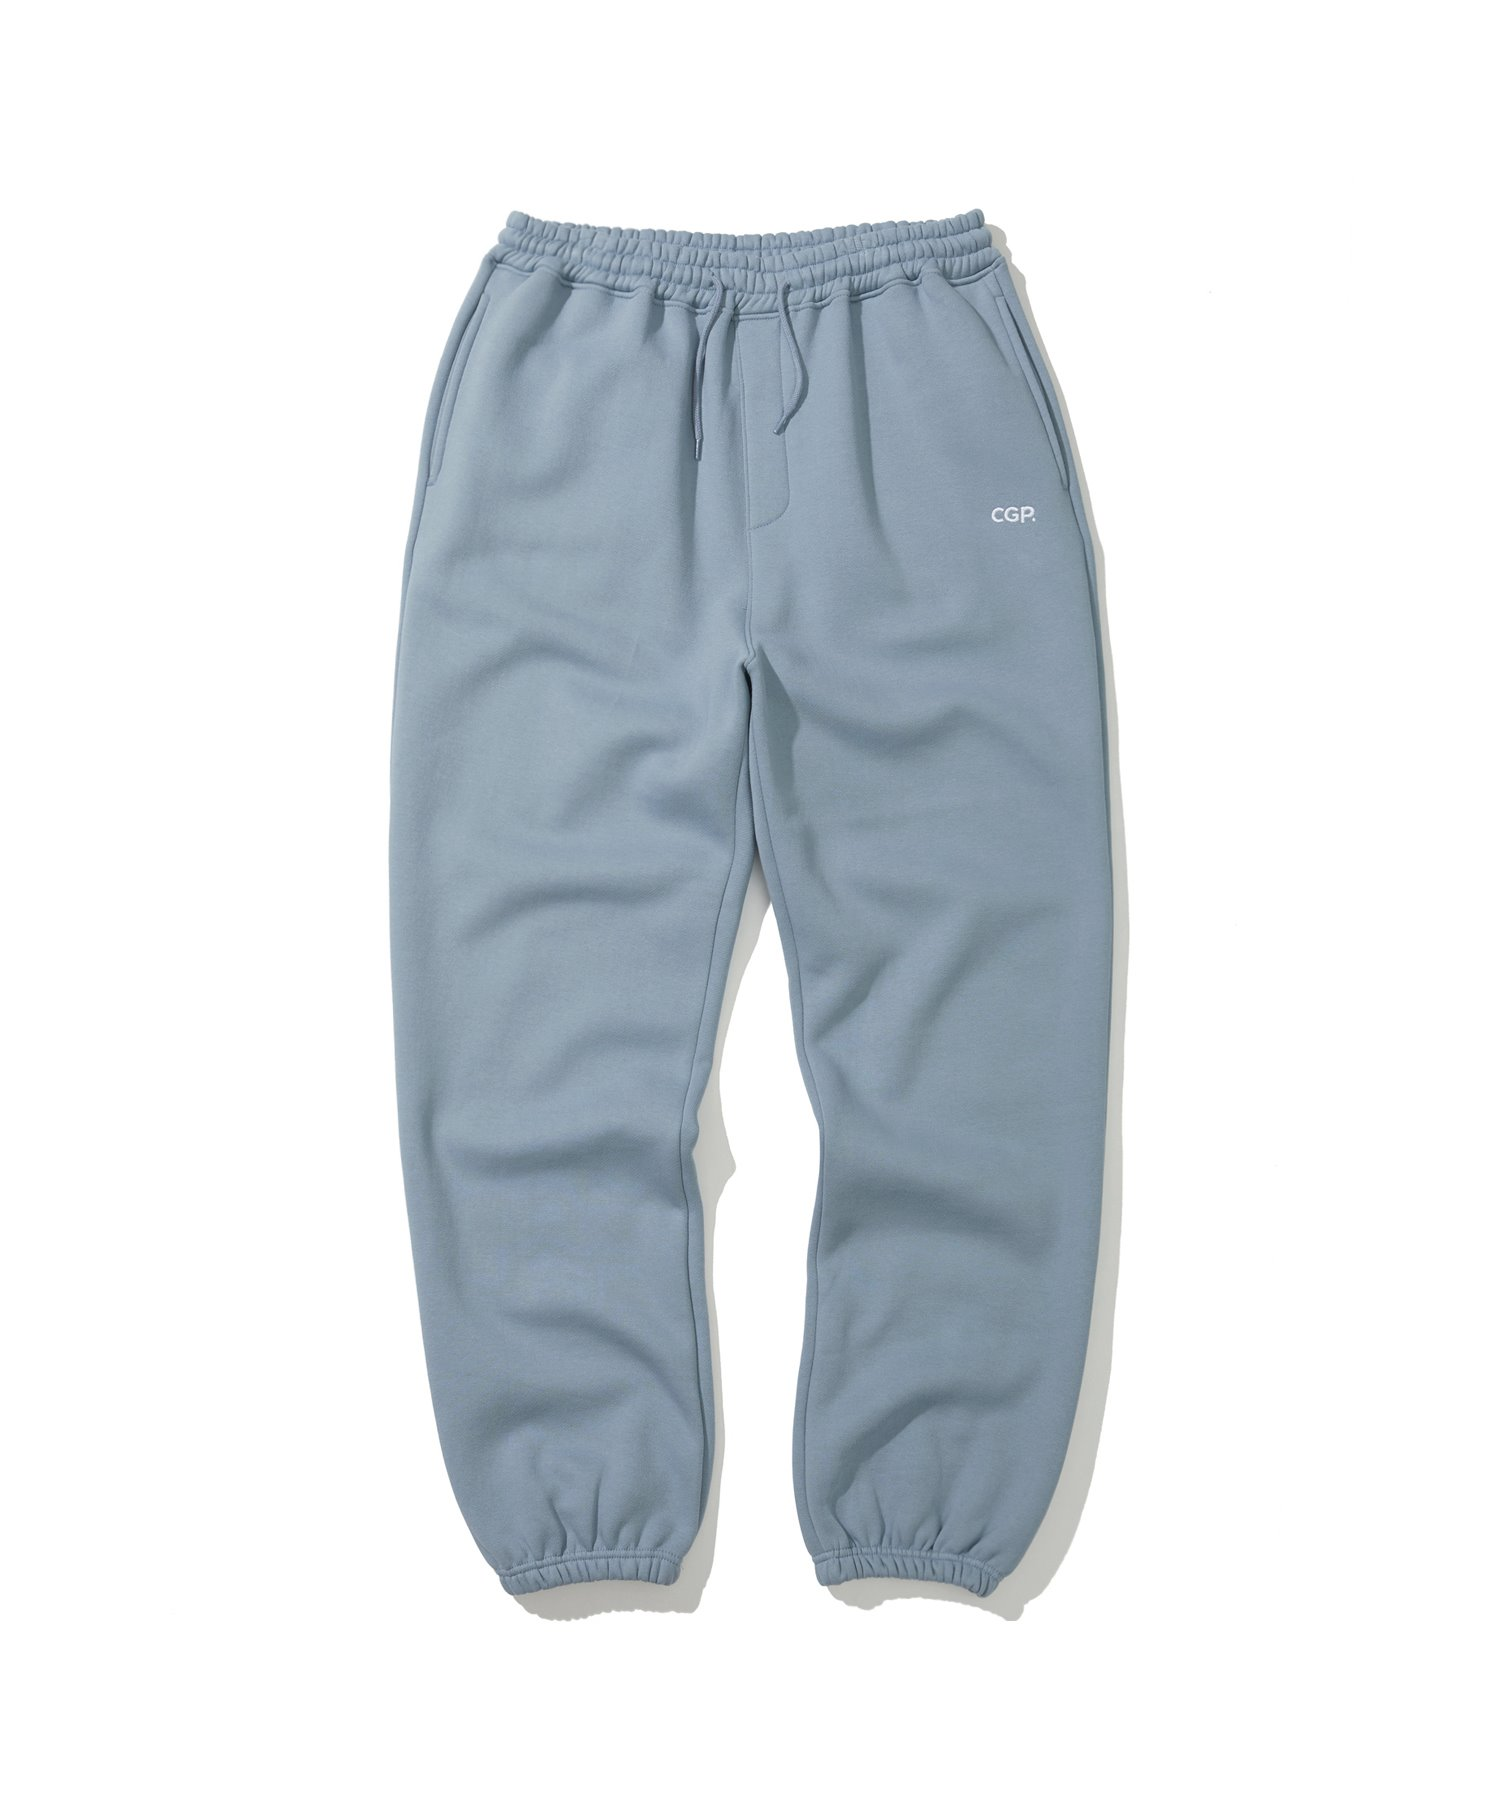 CGP BASIC TRAINING PANTS - SBL